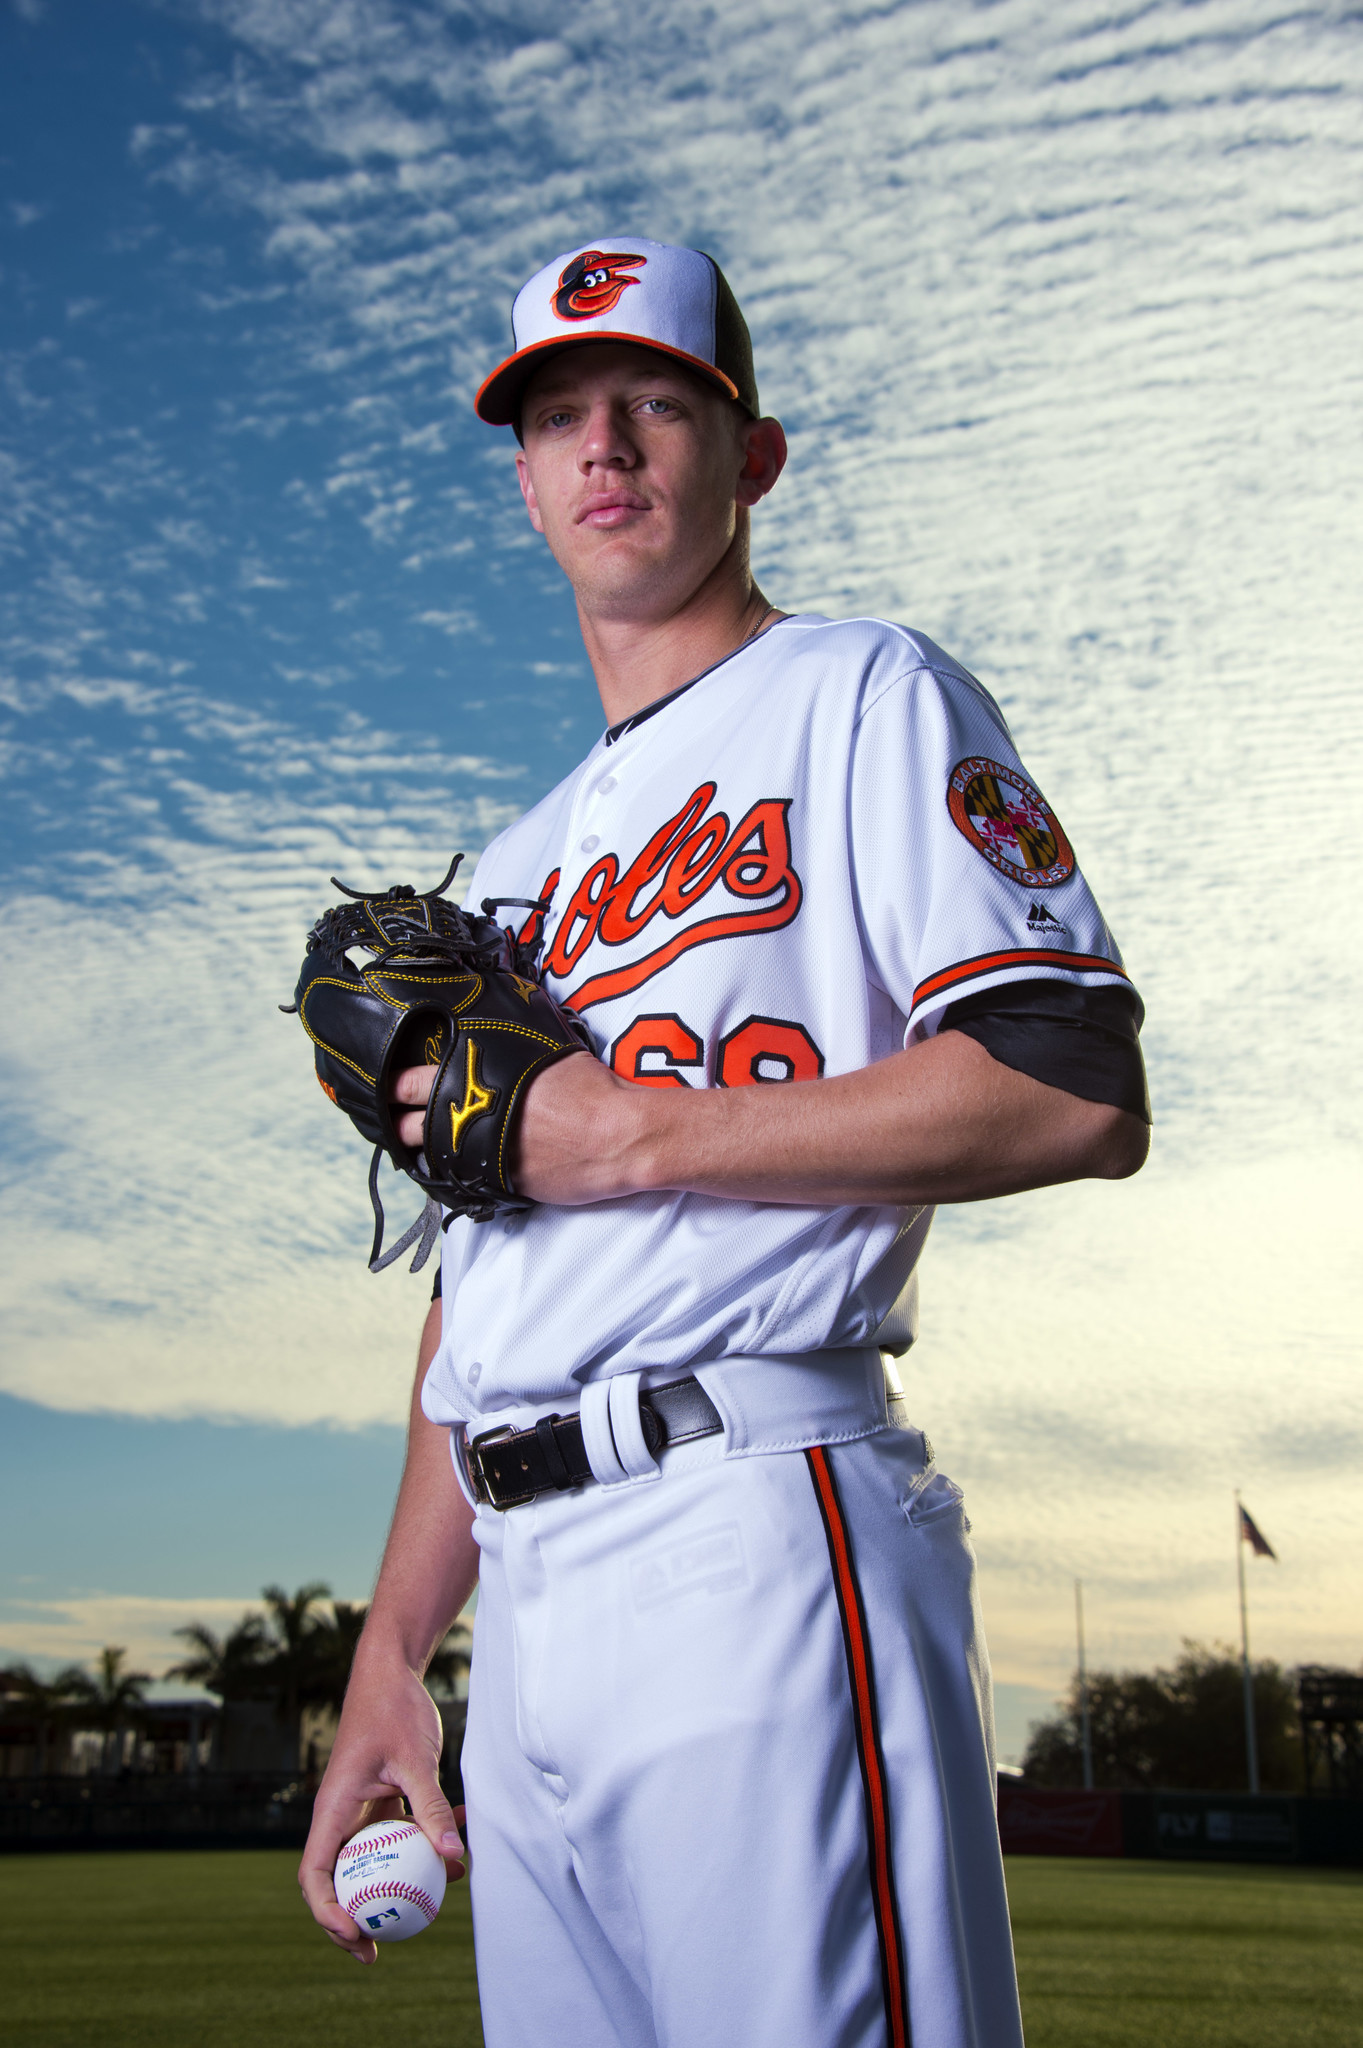 Bal-orioles-pregame-notes-bridwell-gets-first-big-league-call-tillman-reports-no-shoulder-issues-20160821